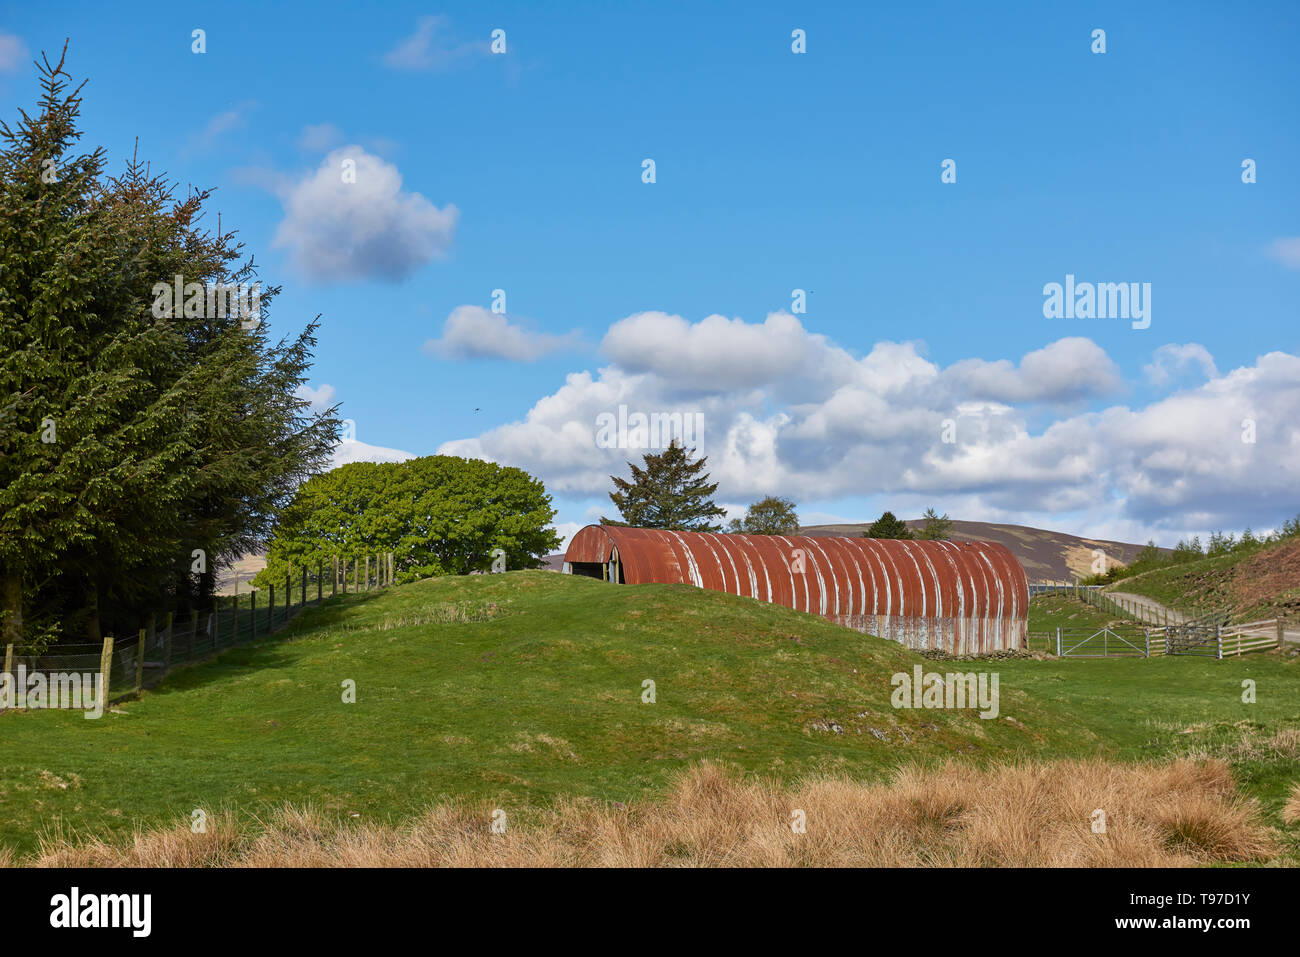 A Metal Nissan Hut styled Barn with Corrugated tin sides and a Roof on a small Hill Farm in the Angus Glens of Scotland. - Stock Image